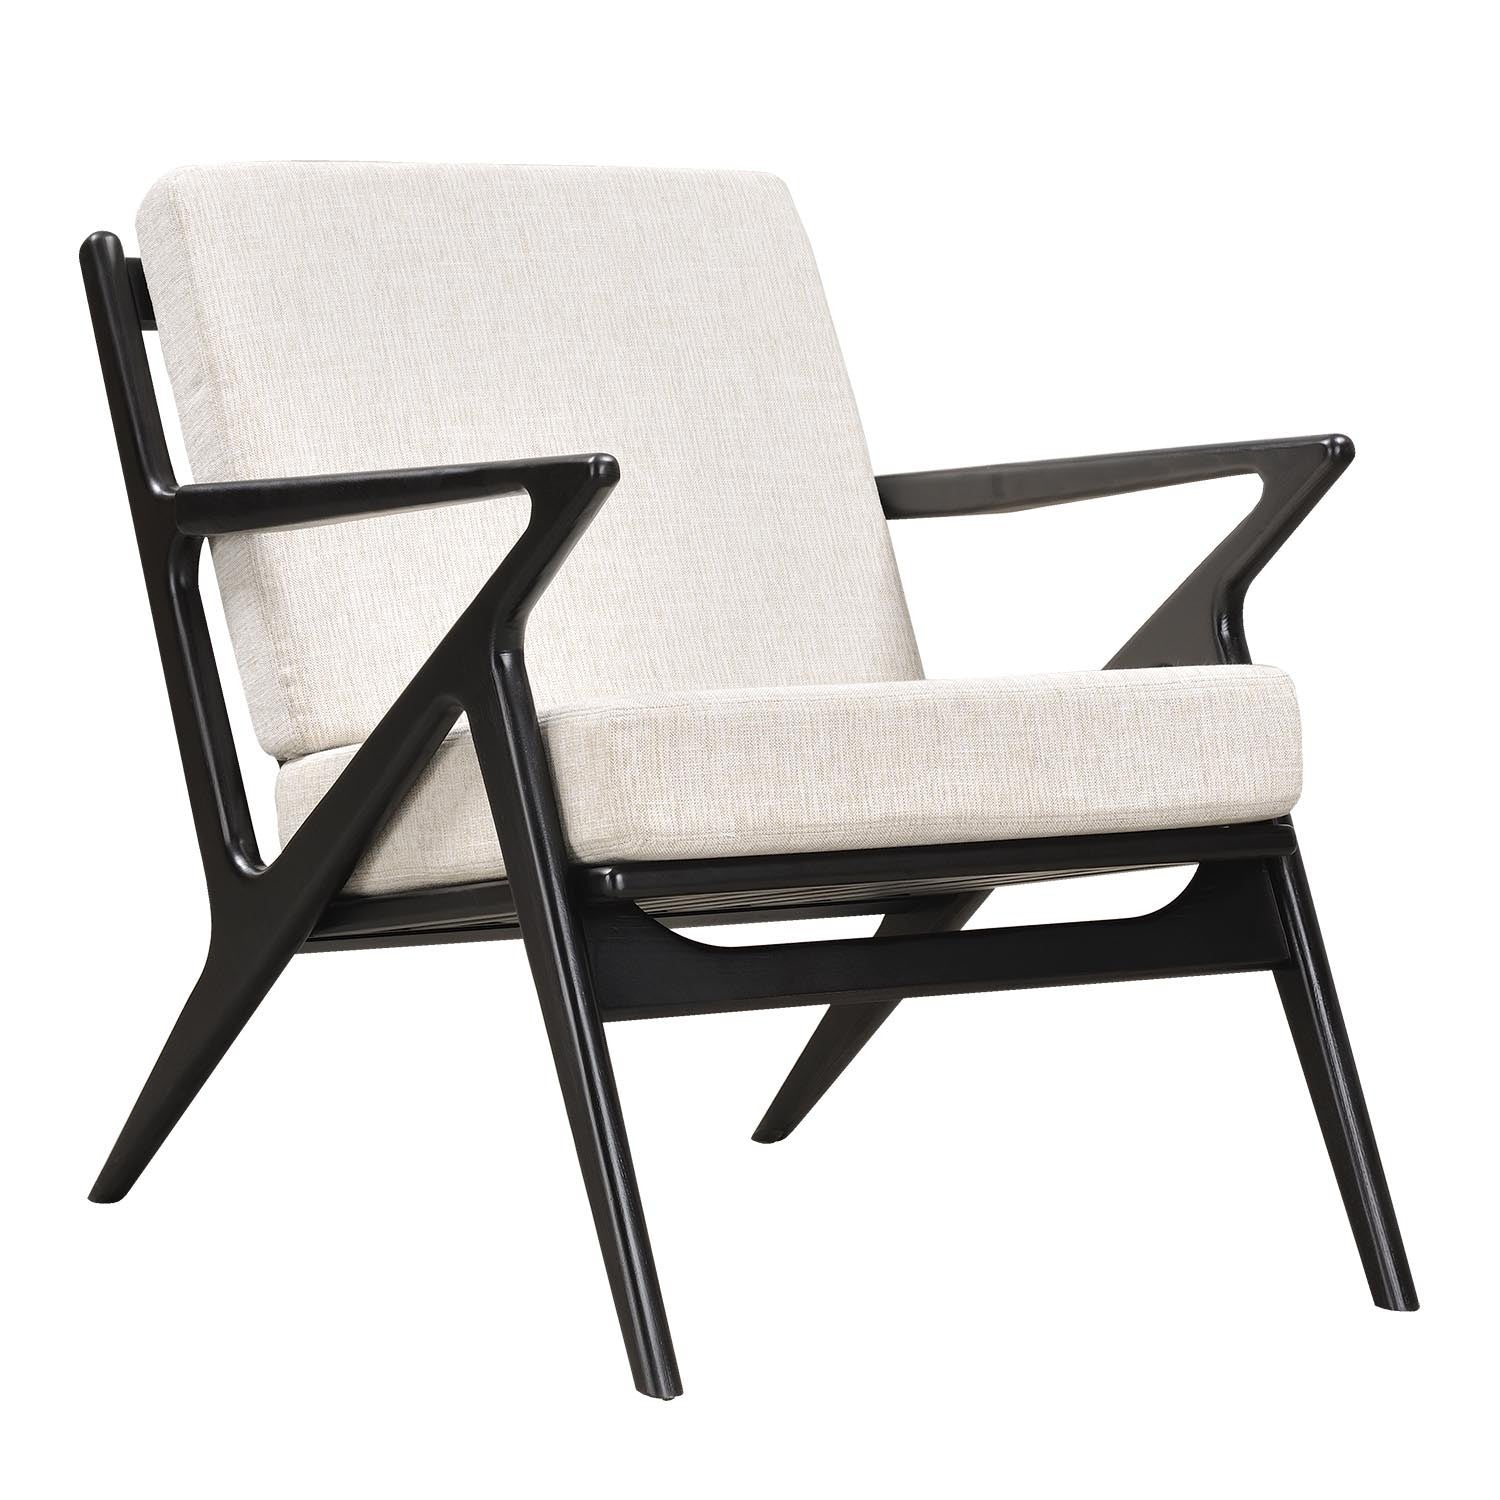 Jet Accent Chair OATMEAL - BLACK